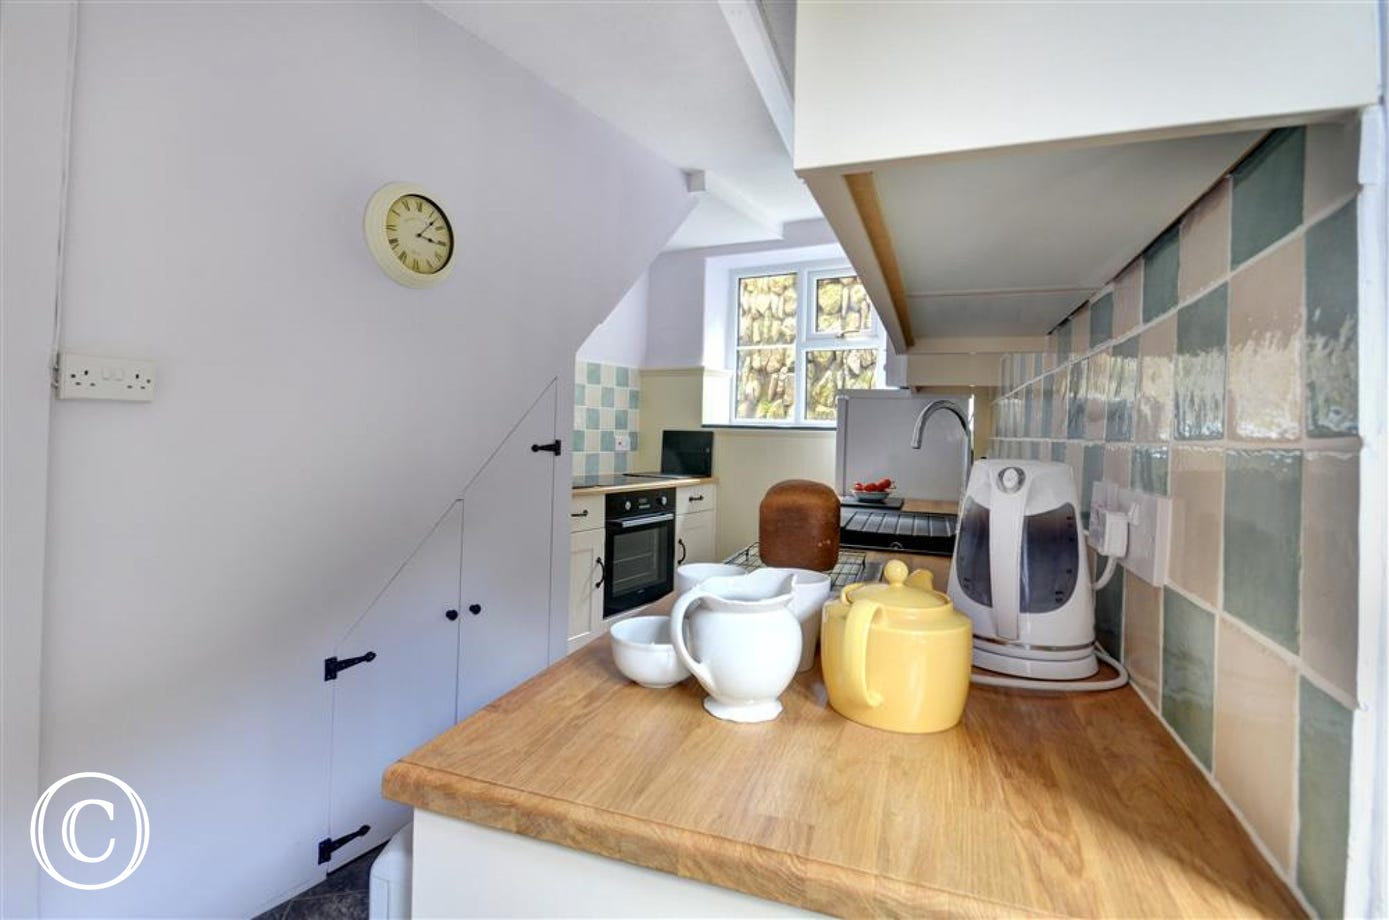 A well equipped kitchen at the rear of the property provides all you will need for dining in